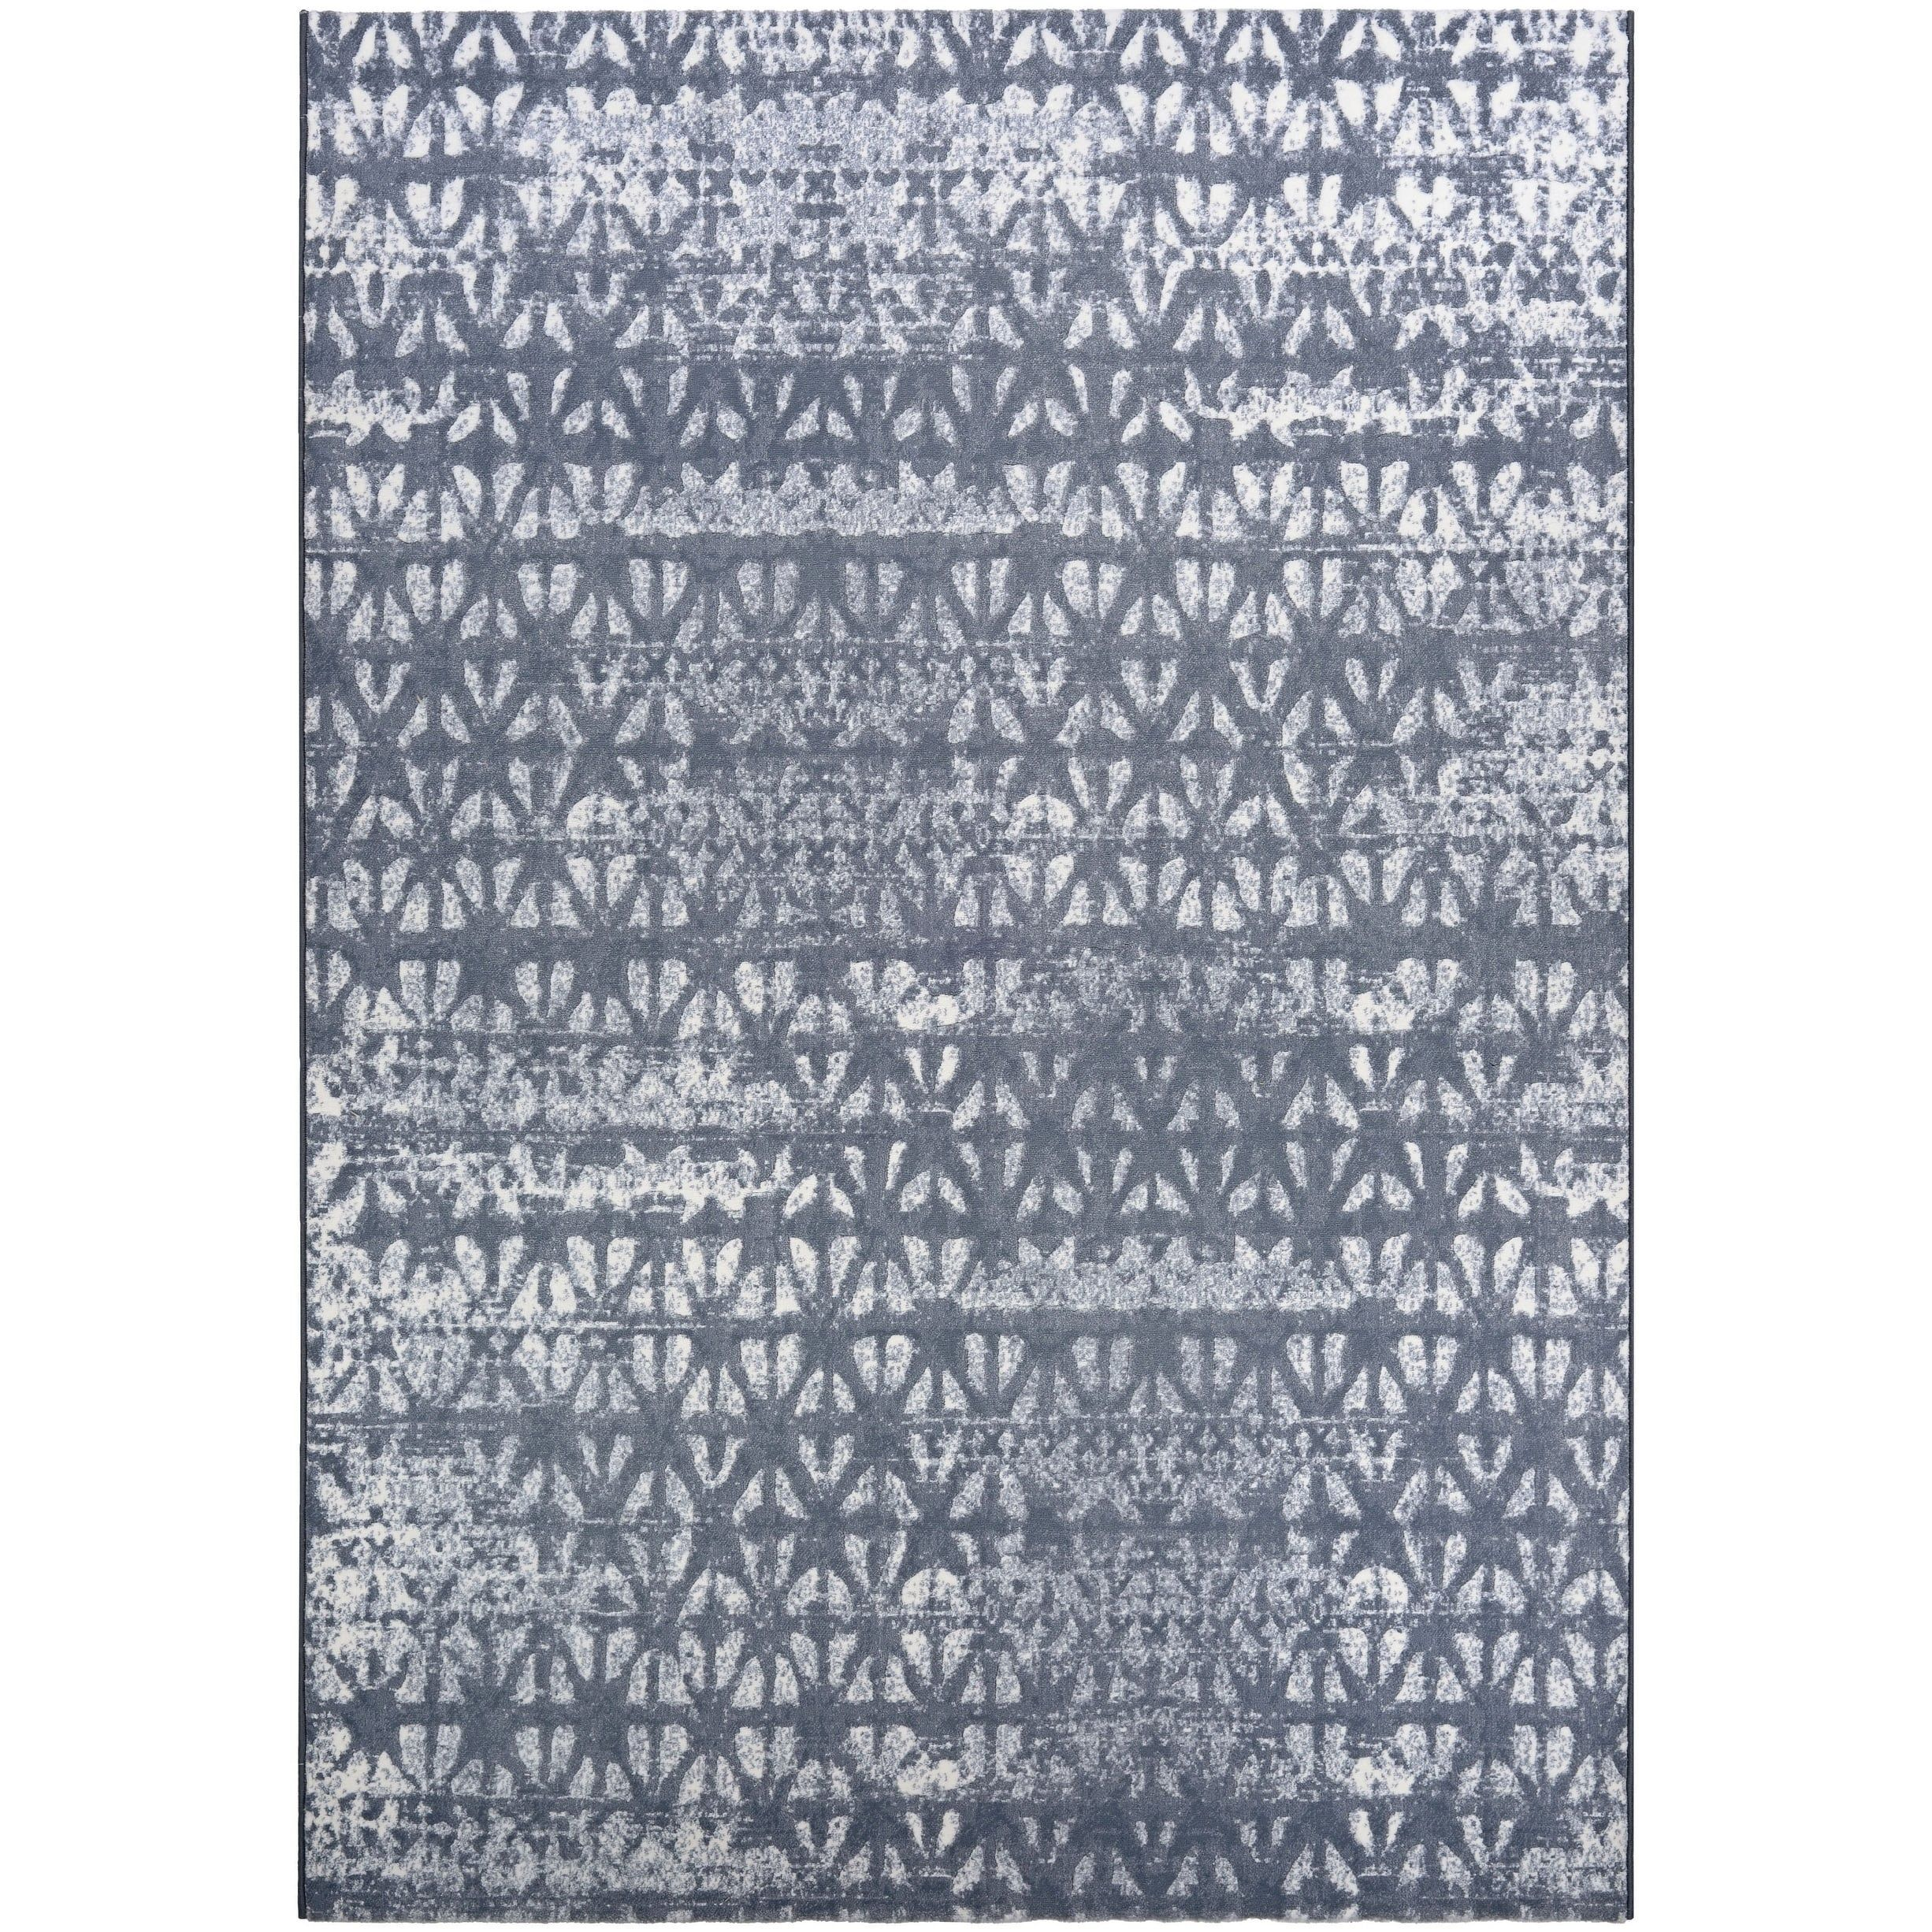 Couristan Marina Grisaille Runner Rug (2\'2 x 7\'10) (confederate grey ...